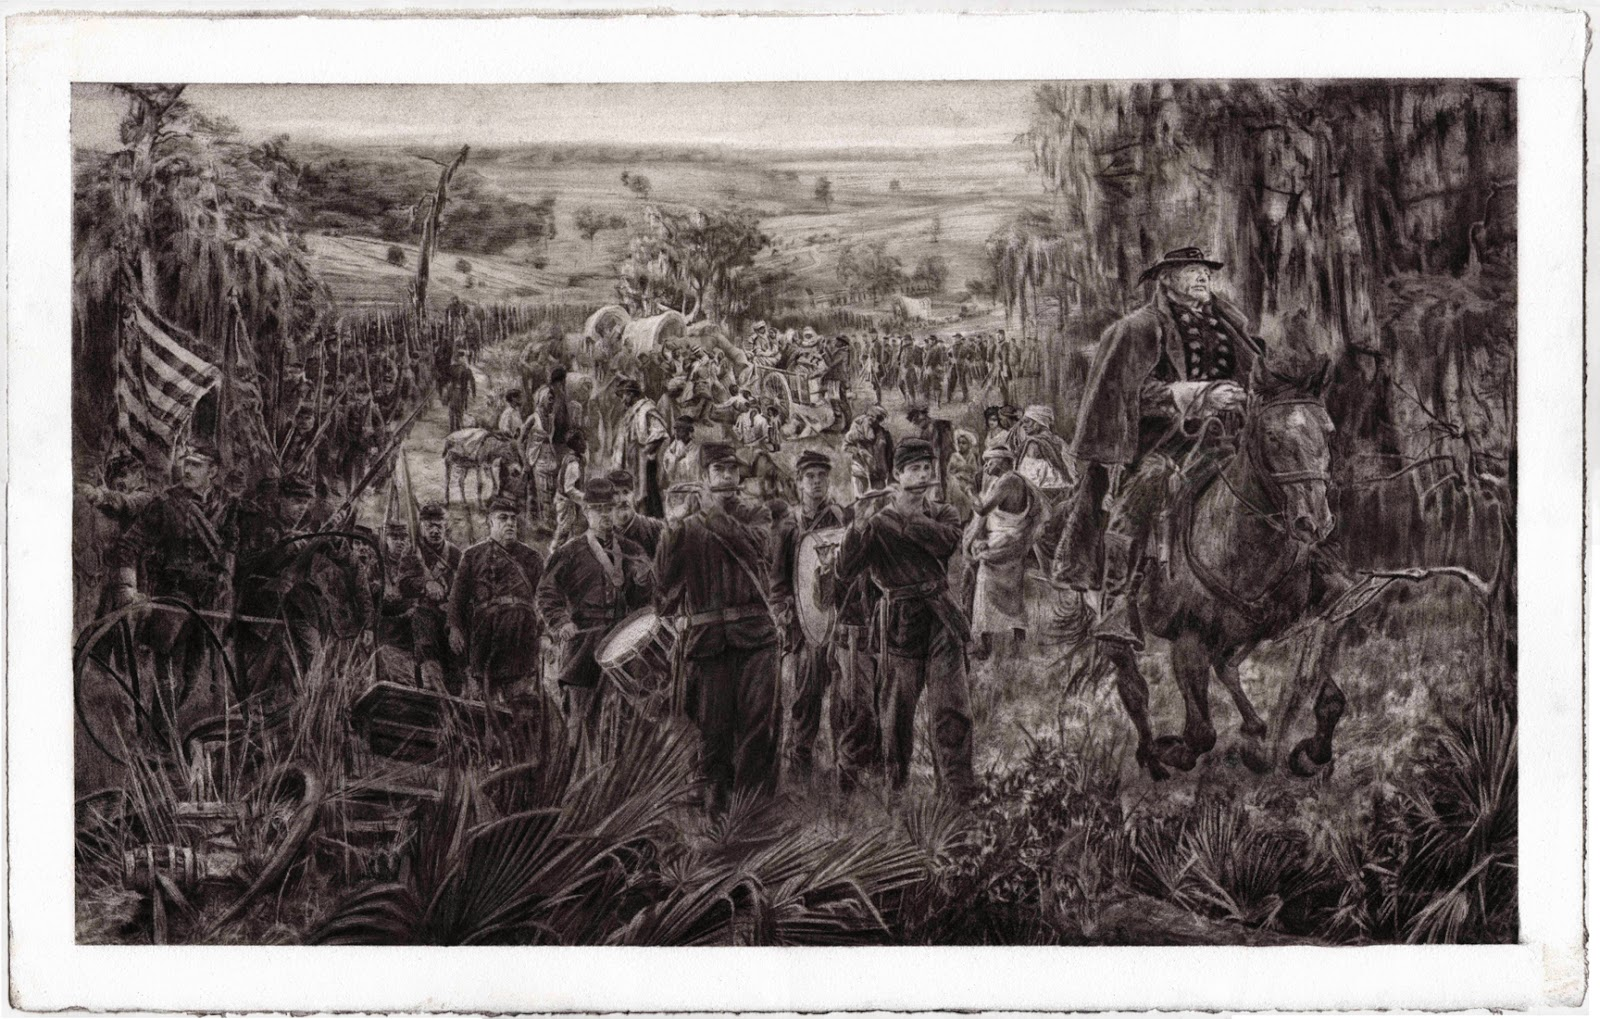 General Sherman's Army Marching to Savannah, Georgia